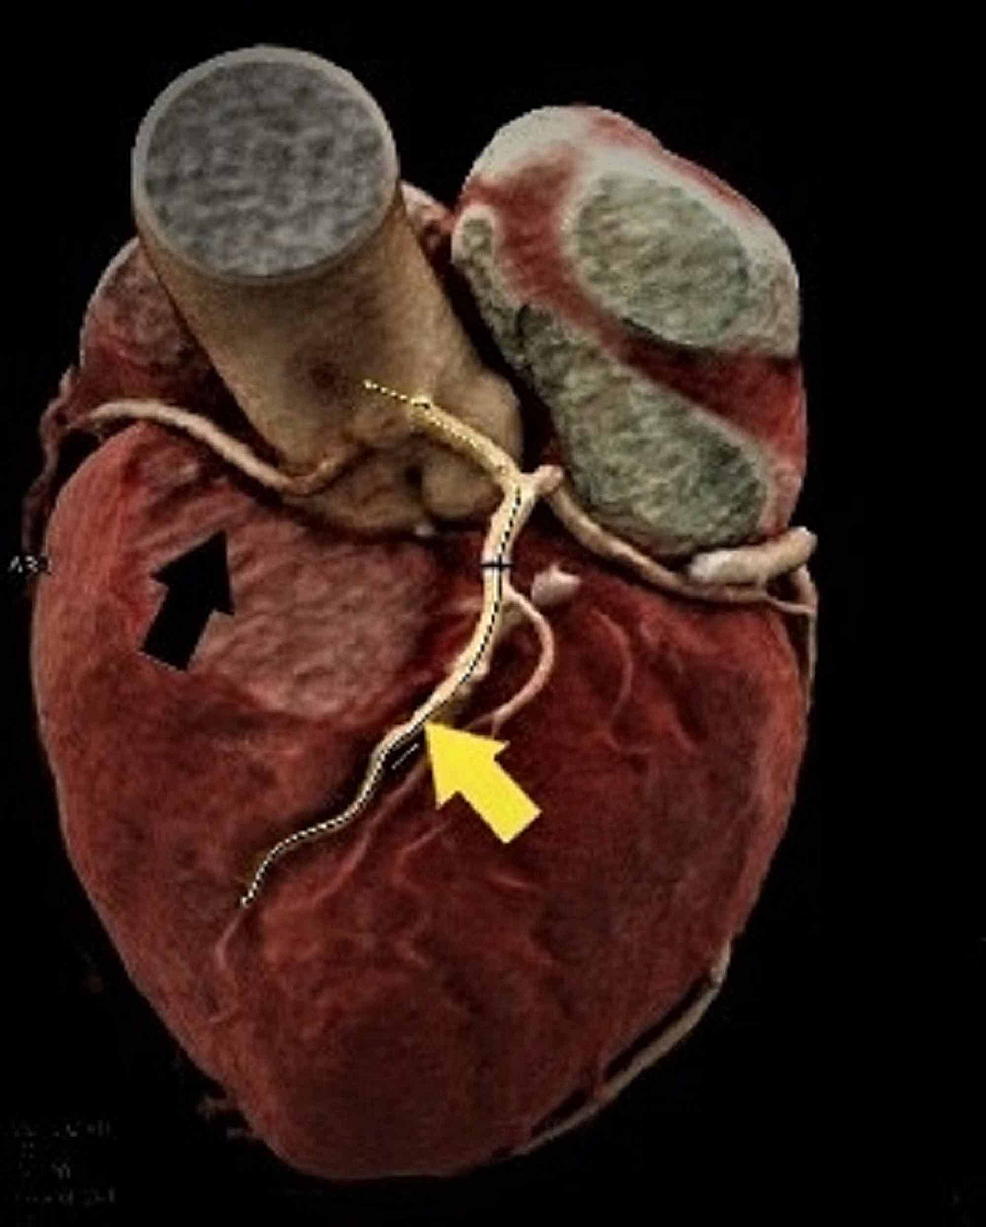 Three-dimensional-CT-imaging-of-the-origin-and-course-of-the-right-coronary-artery-(black-arrow)-and-the-left-coronary-artery-(yellow-arrow)